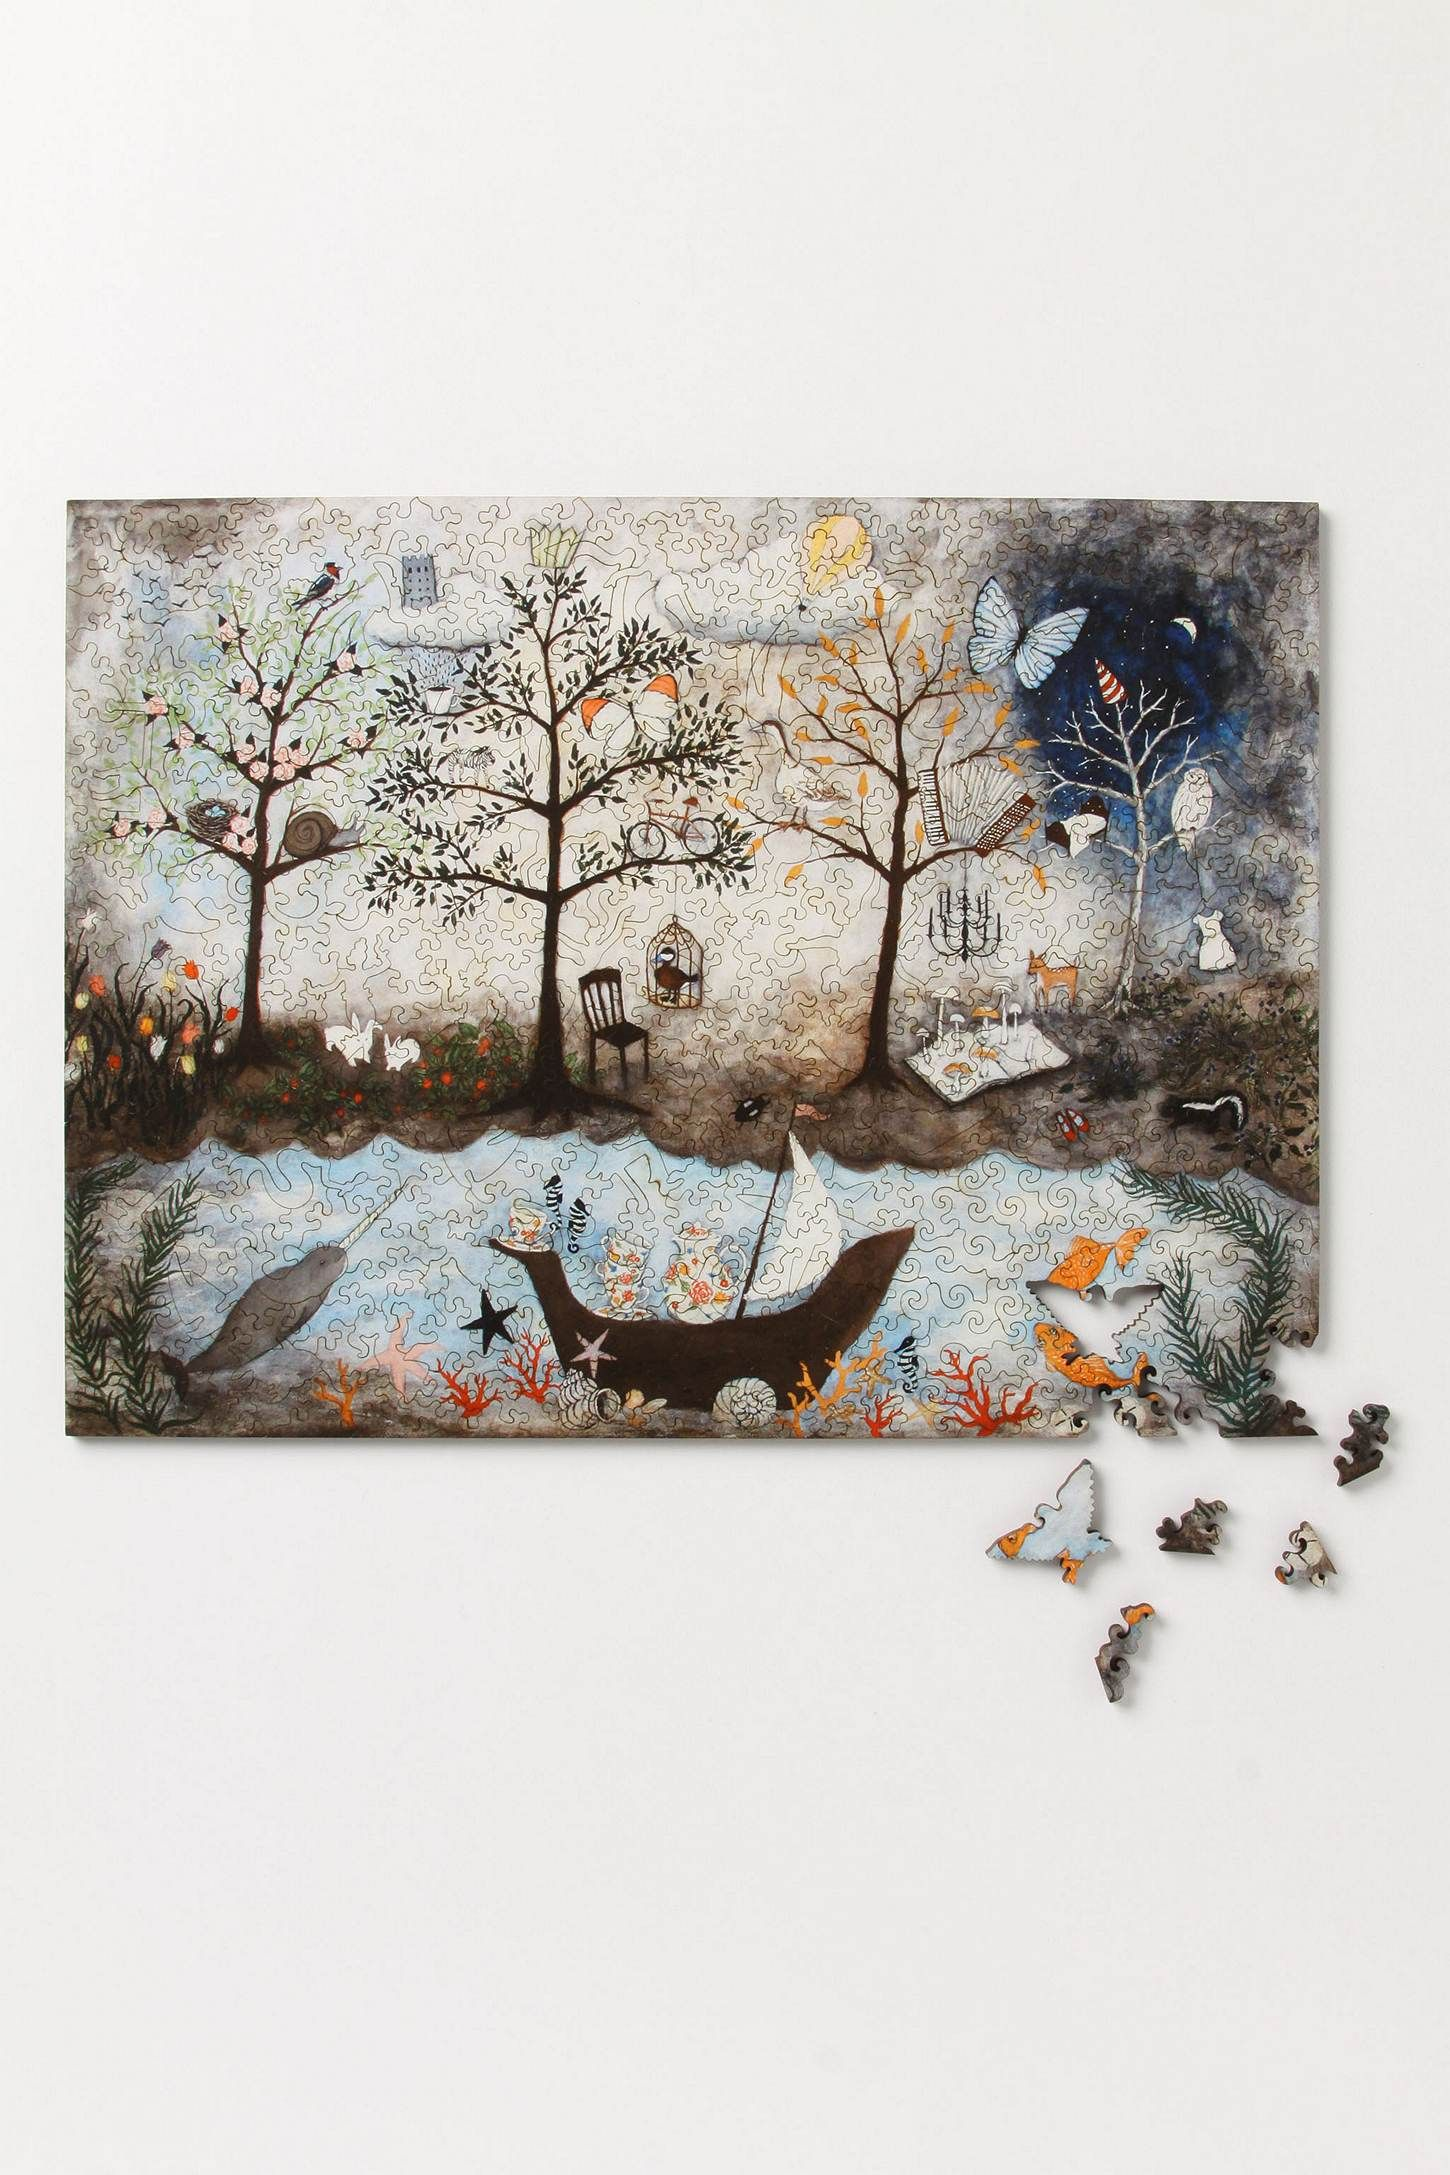 Enchanted Forest Jigsaw Puzzle | Puzzles | Pinterest | Enchanted and ...